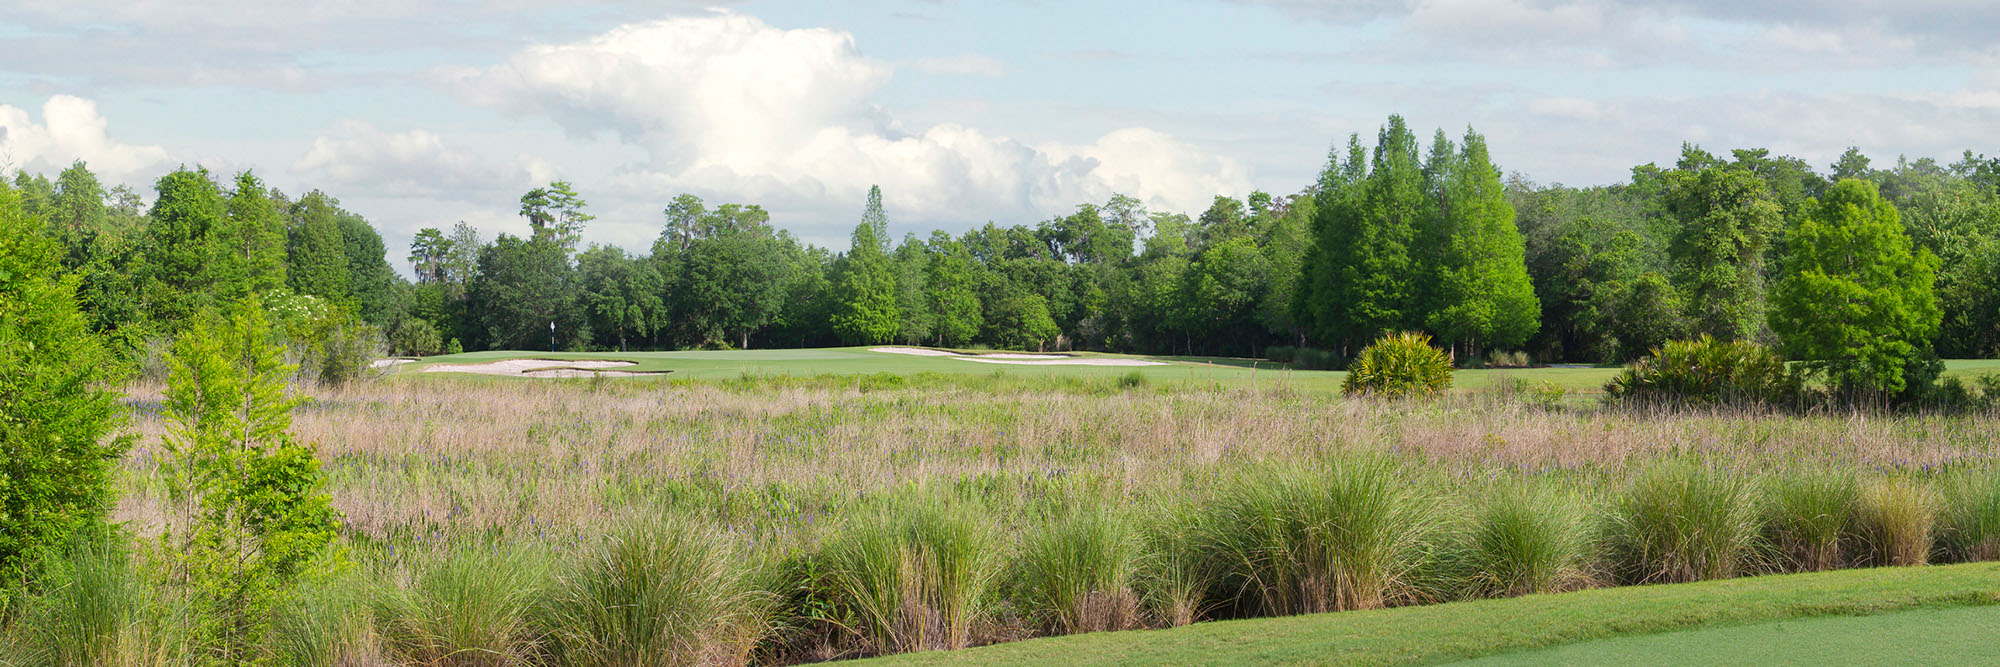 Golf Course Image - Ritz-Carlton Orlando No. 8